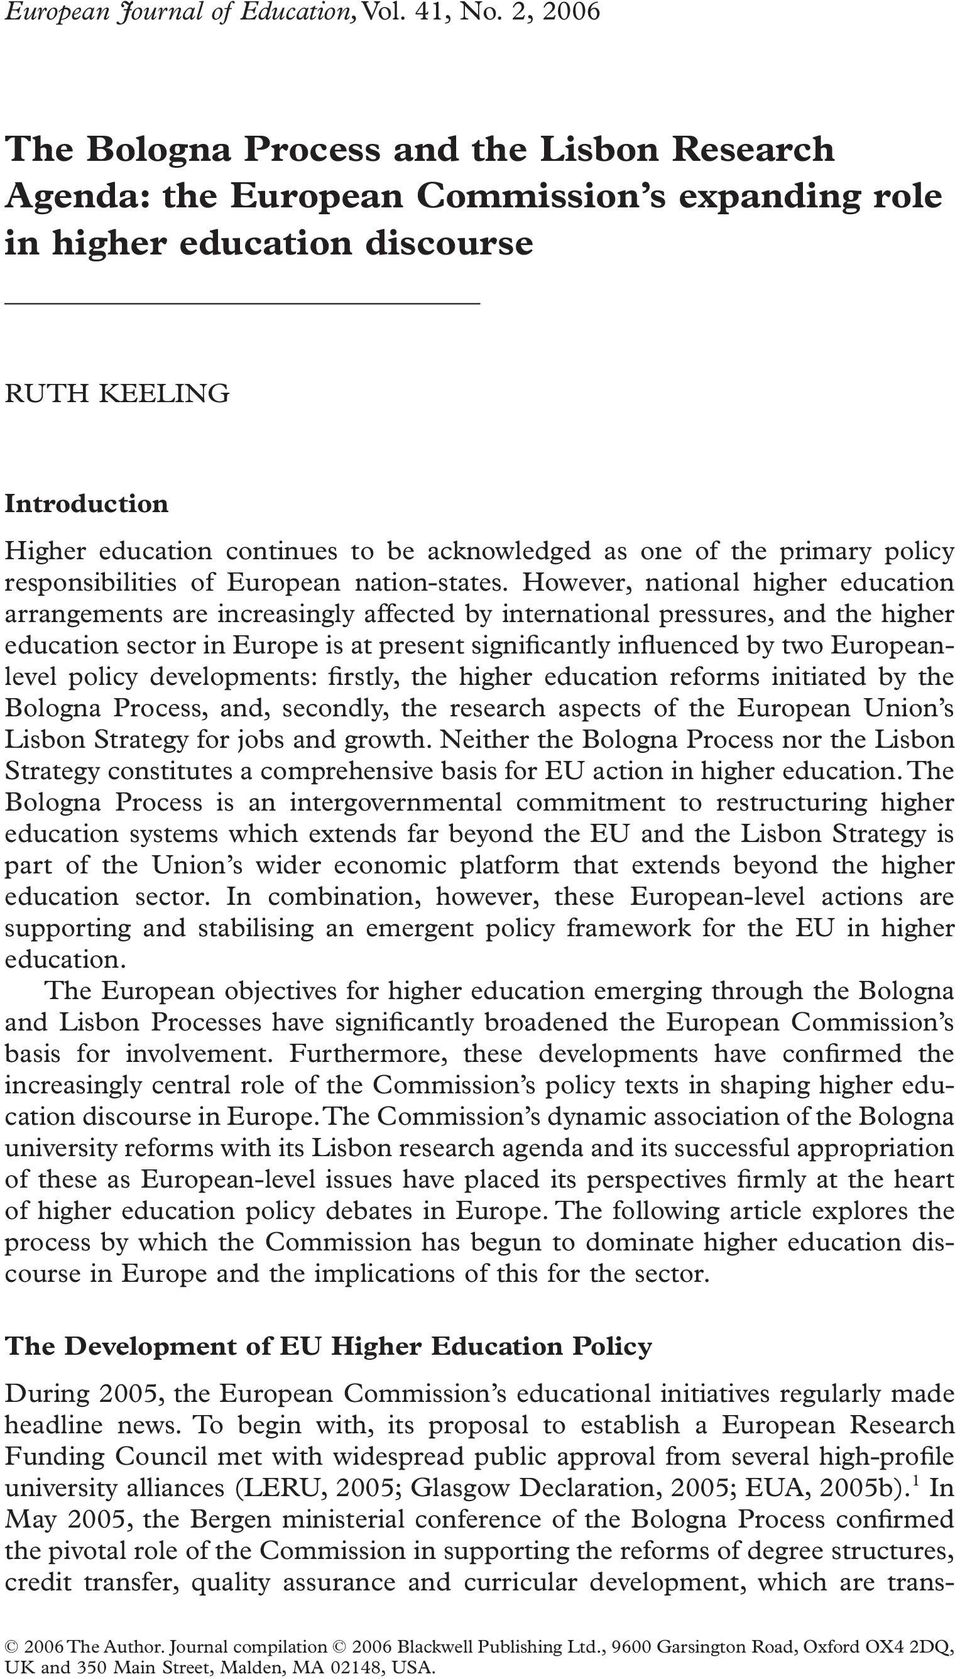 2, 2006 The Bologna Process and the Lisbon Research Agenda: the European Commission s expanding role in higher education discourse RUTH KEELING Introduction Higher education continues to be